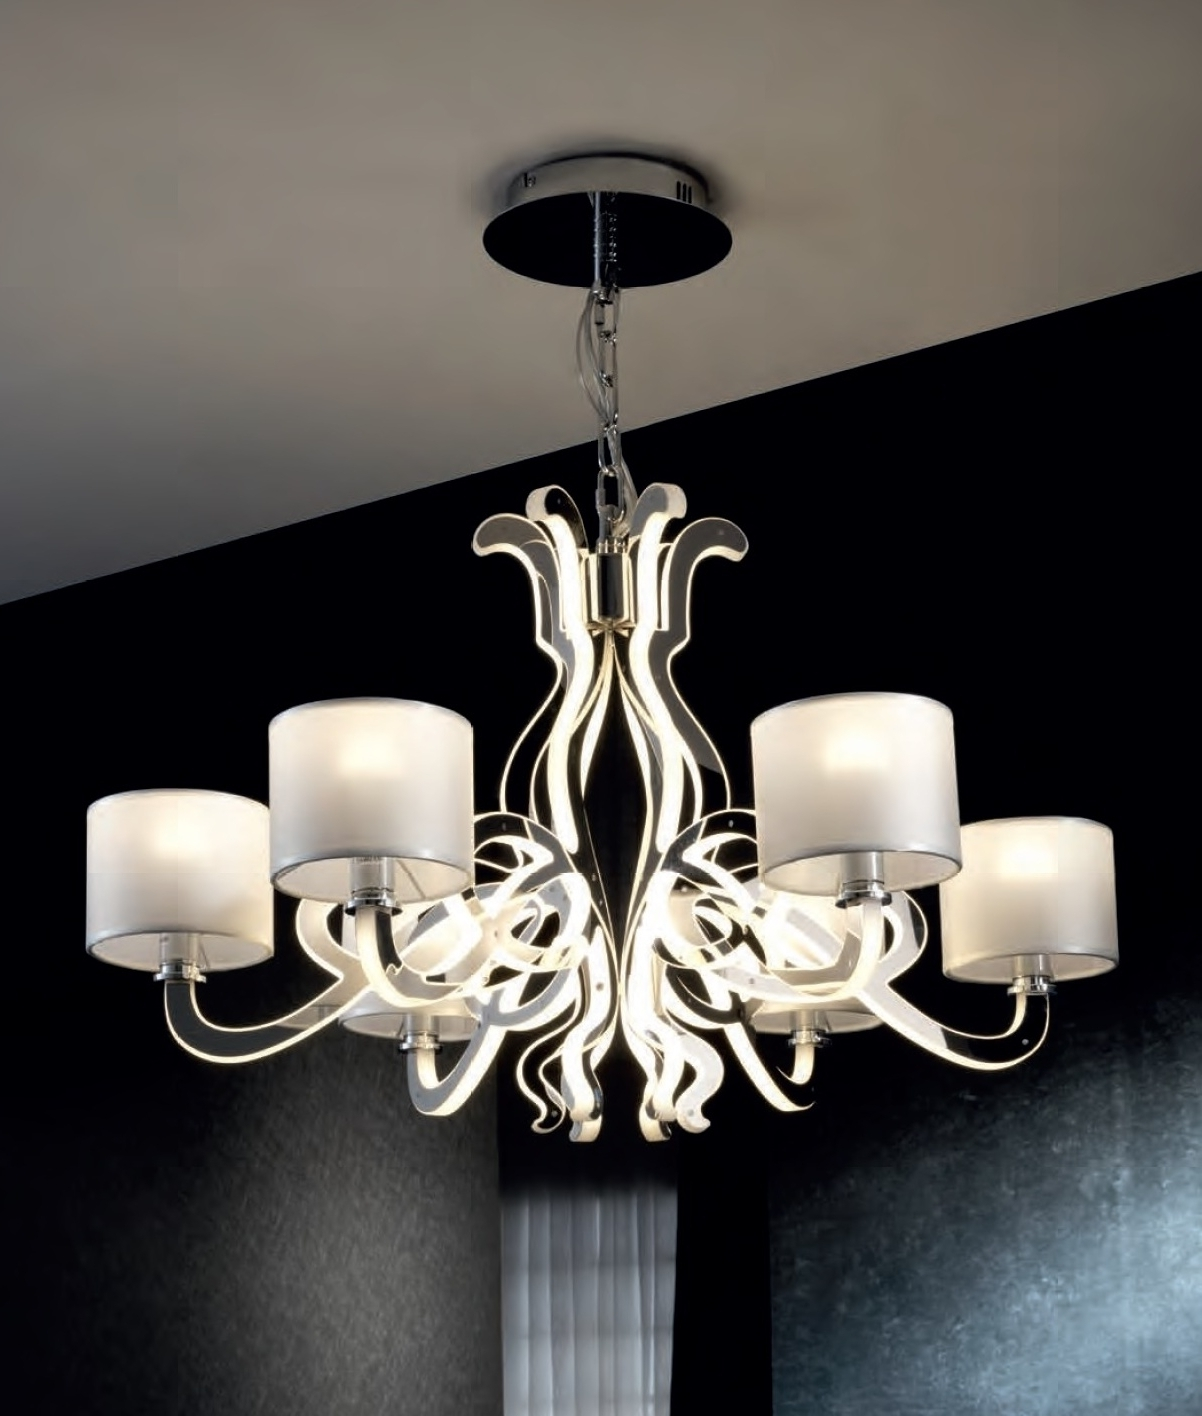 2017 Ultra Modern Chandeliers (View 1 of 15)